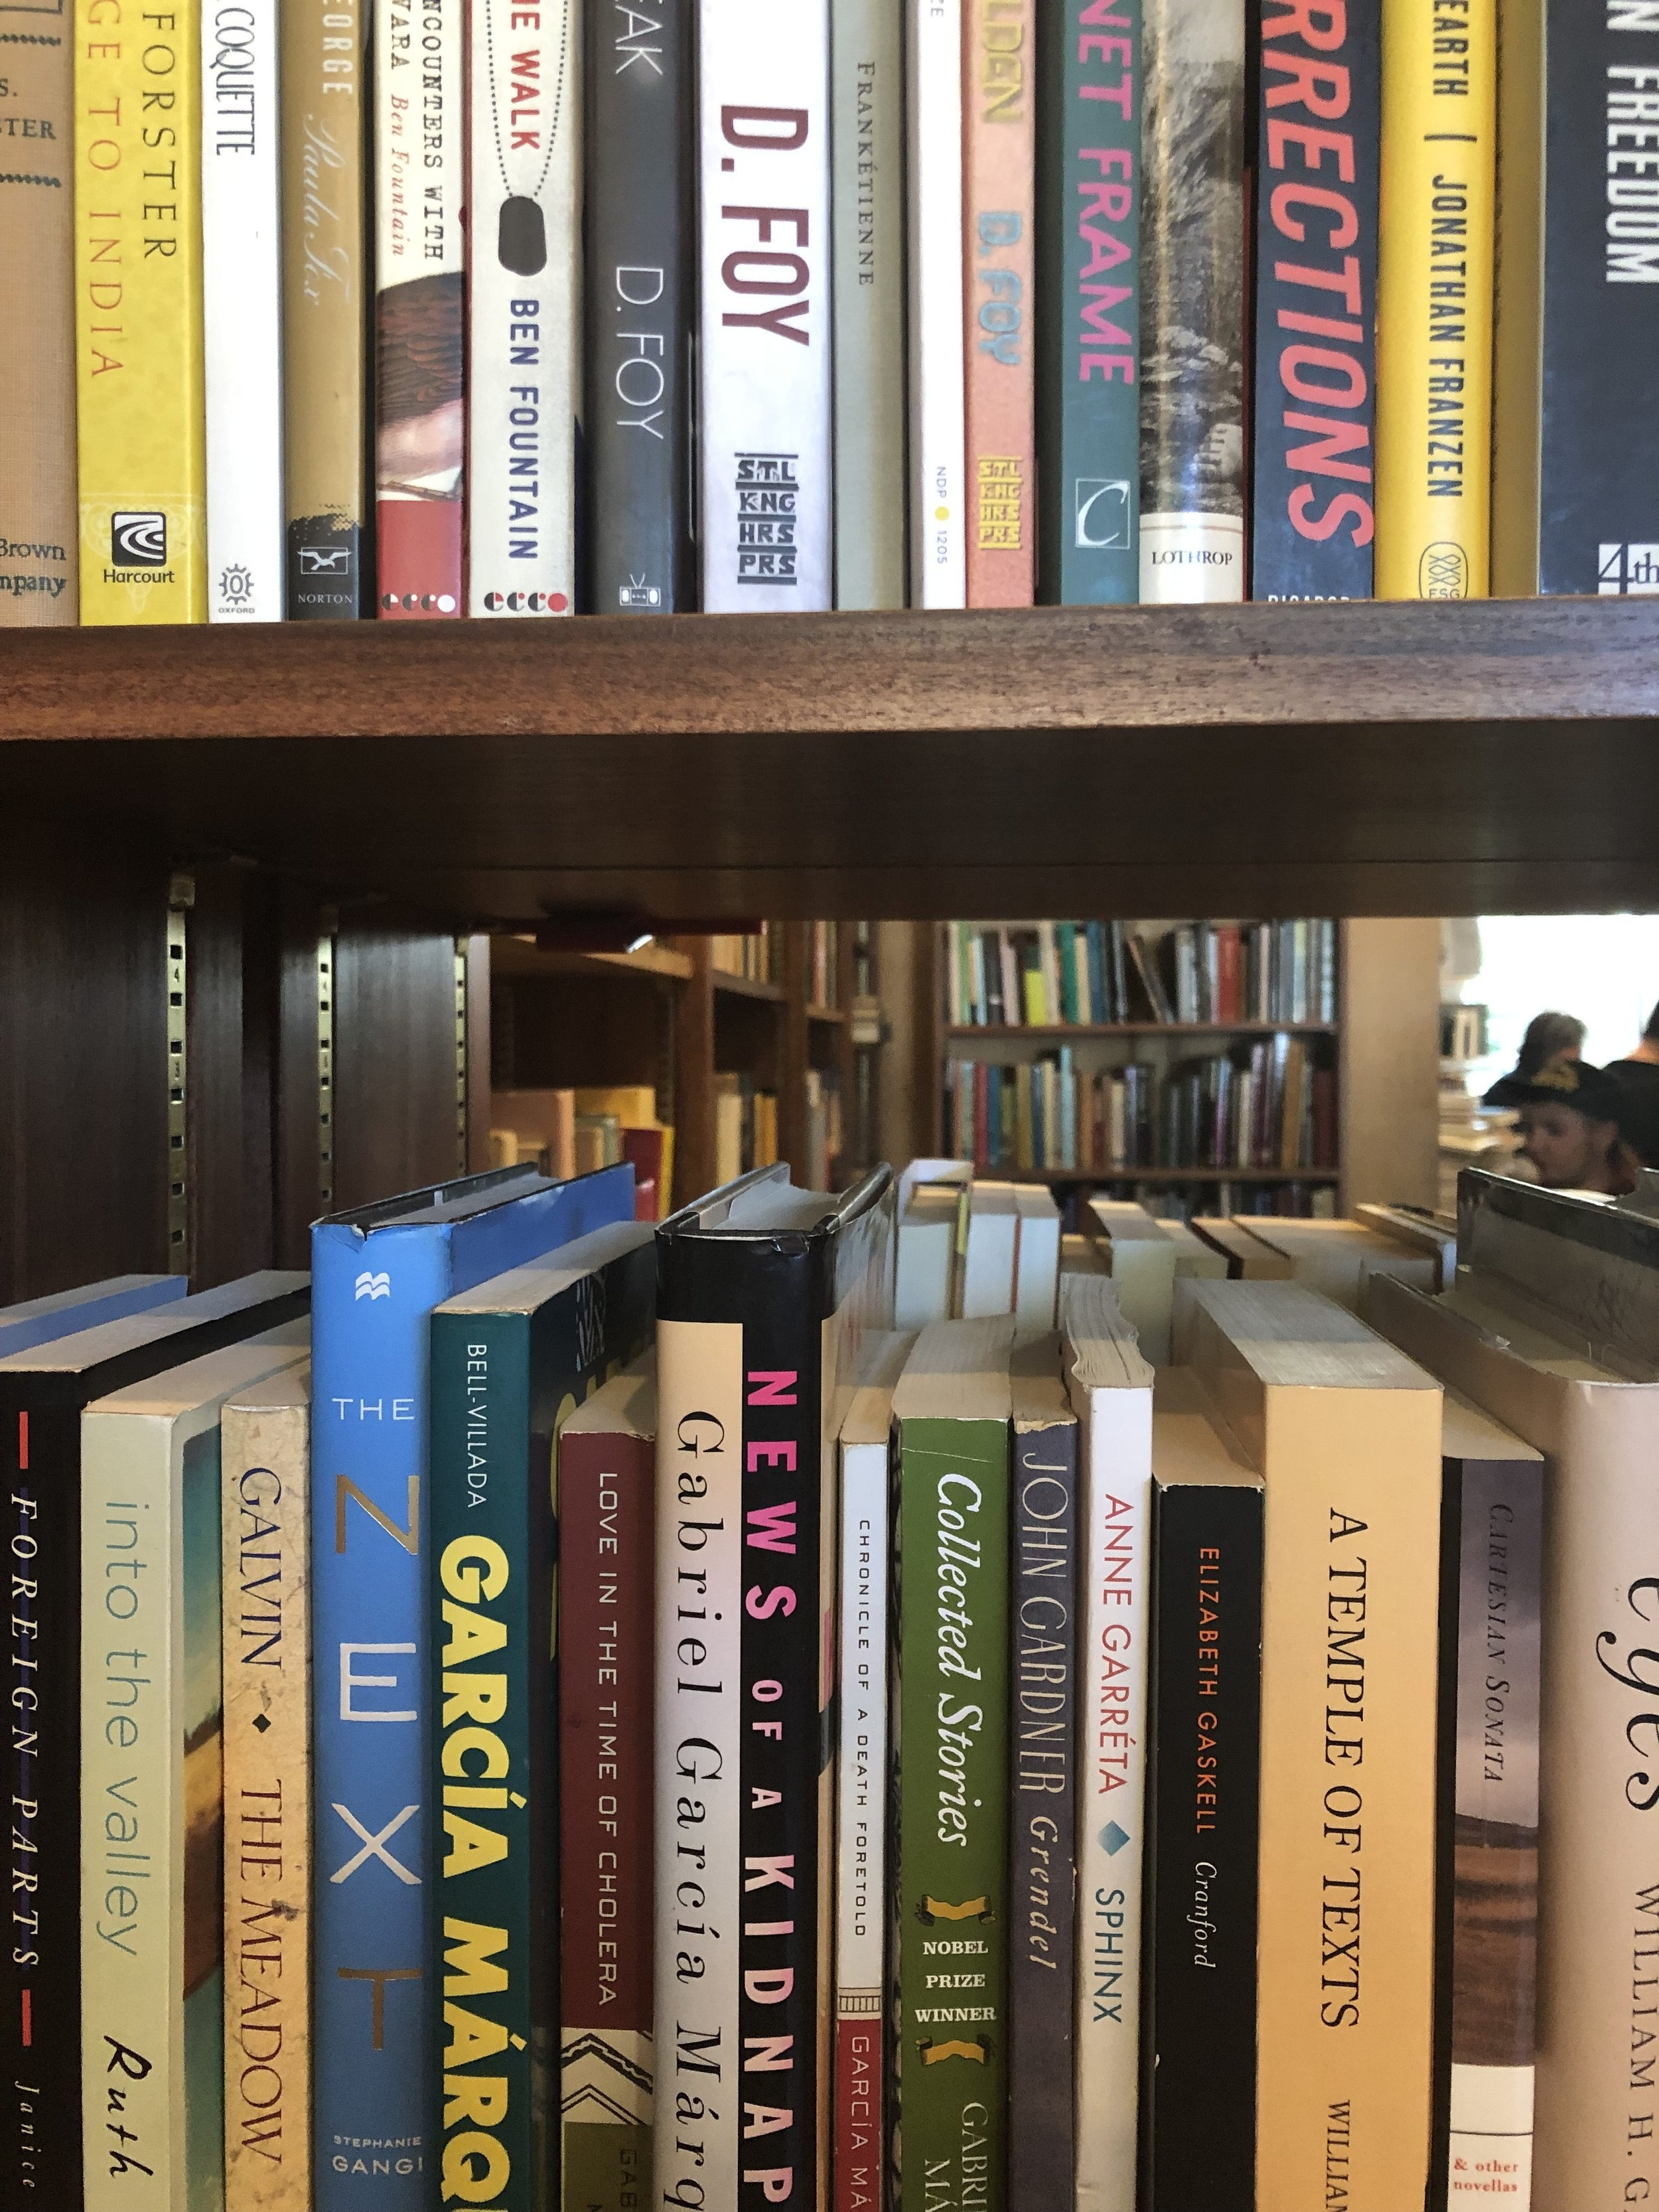 bonus pic of the kind of shelves you'll find in every romantic comedy bookstore. your love interest could be standing on the other side!